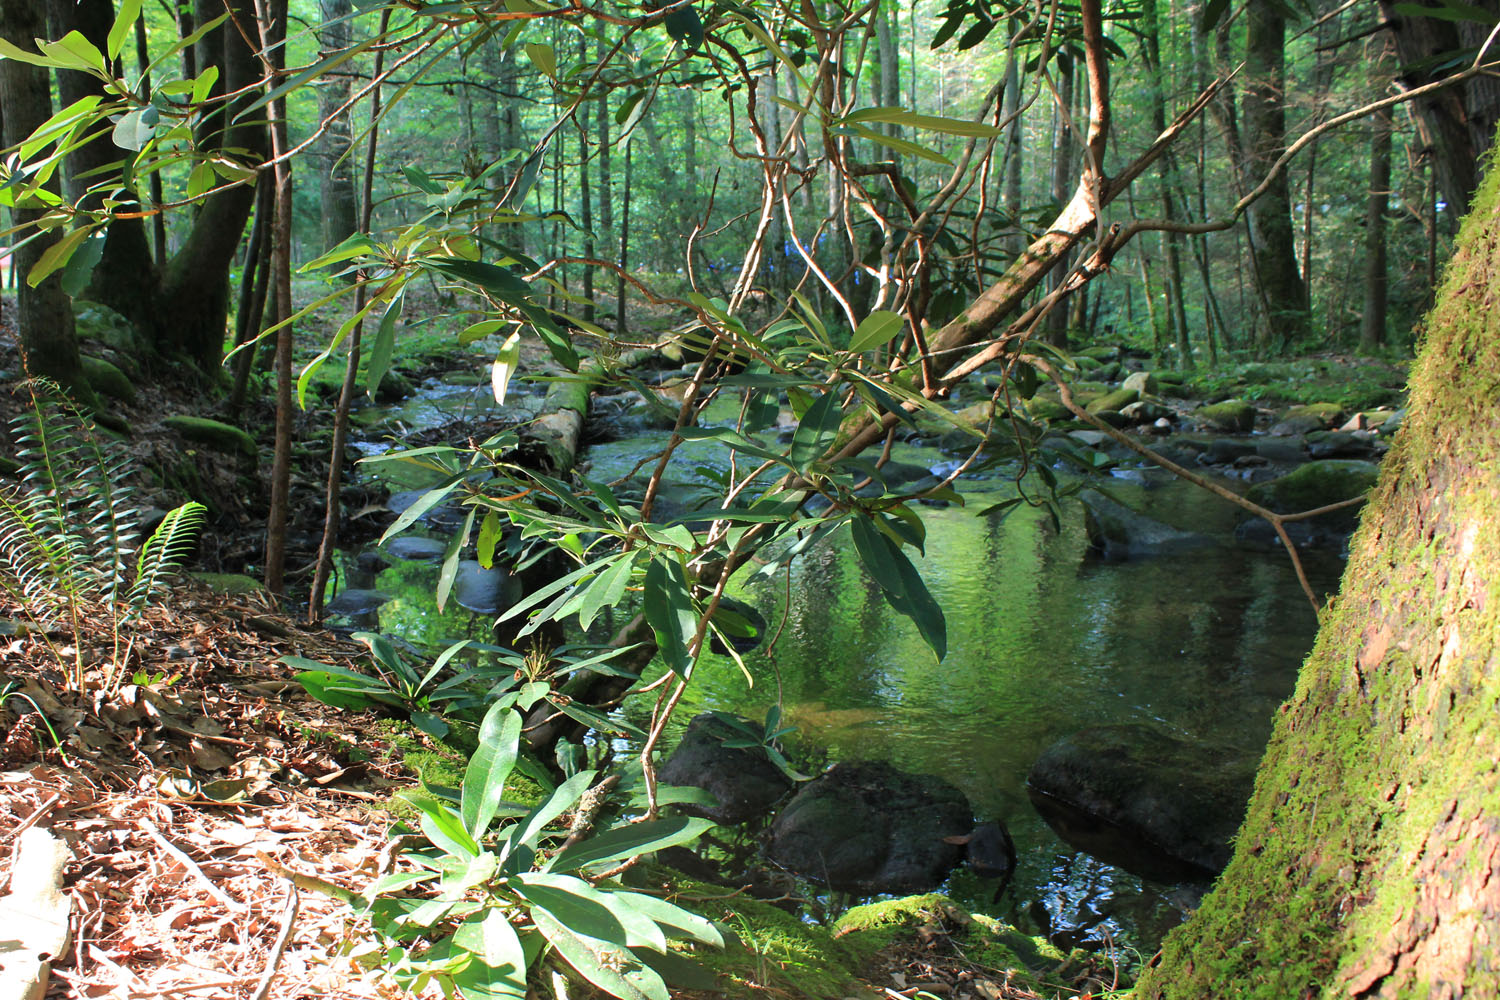 2012 – Le parc national Great Smoky Mountains